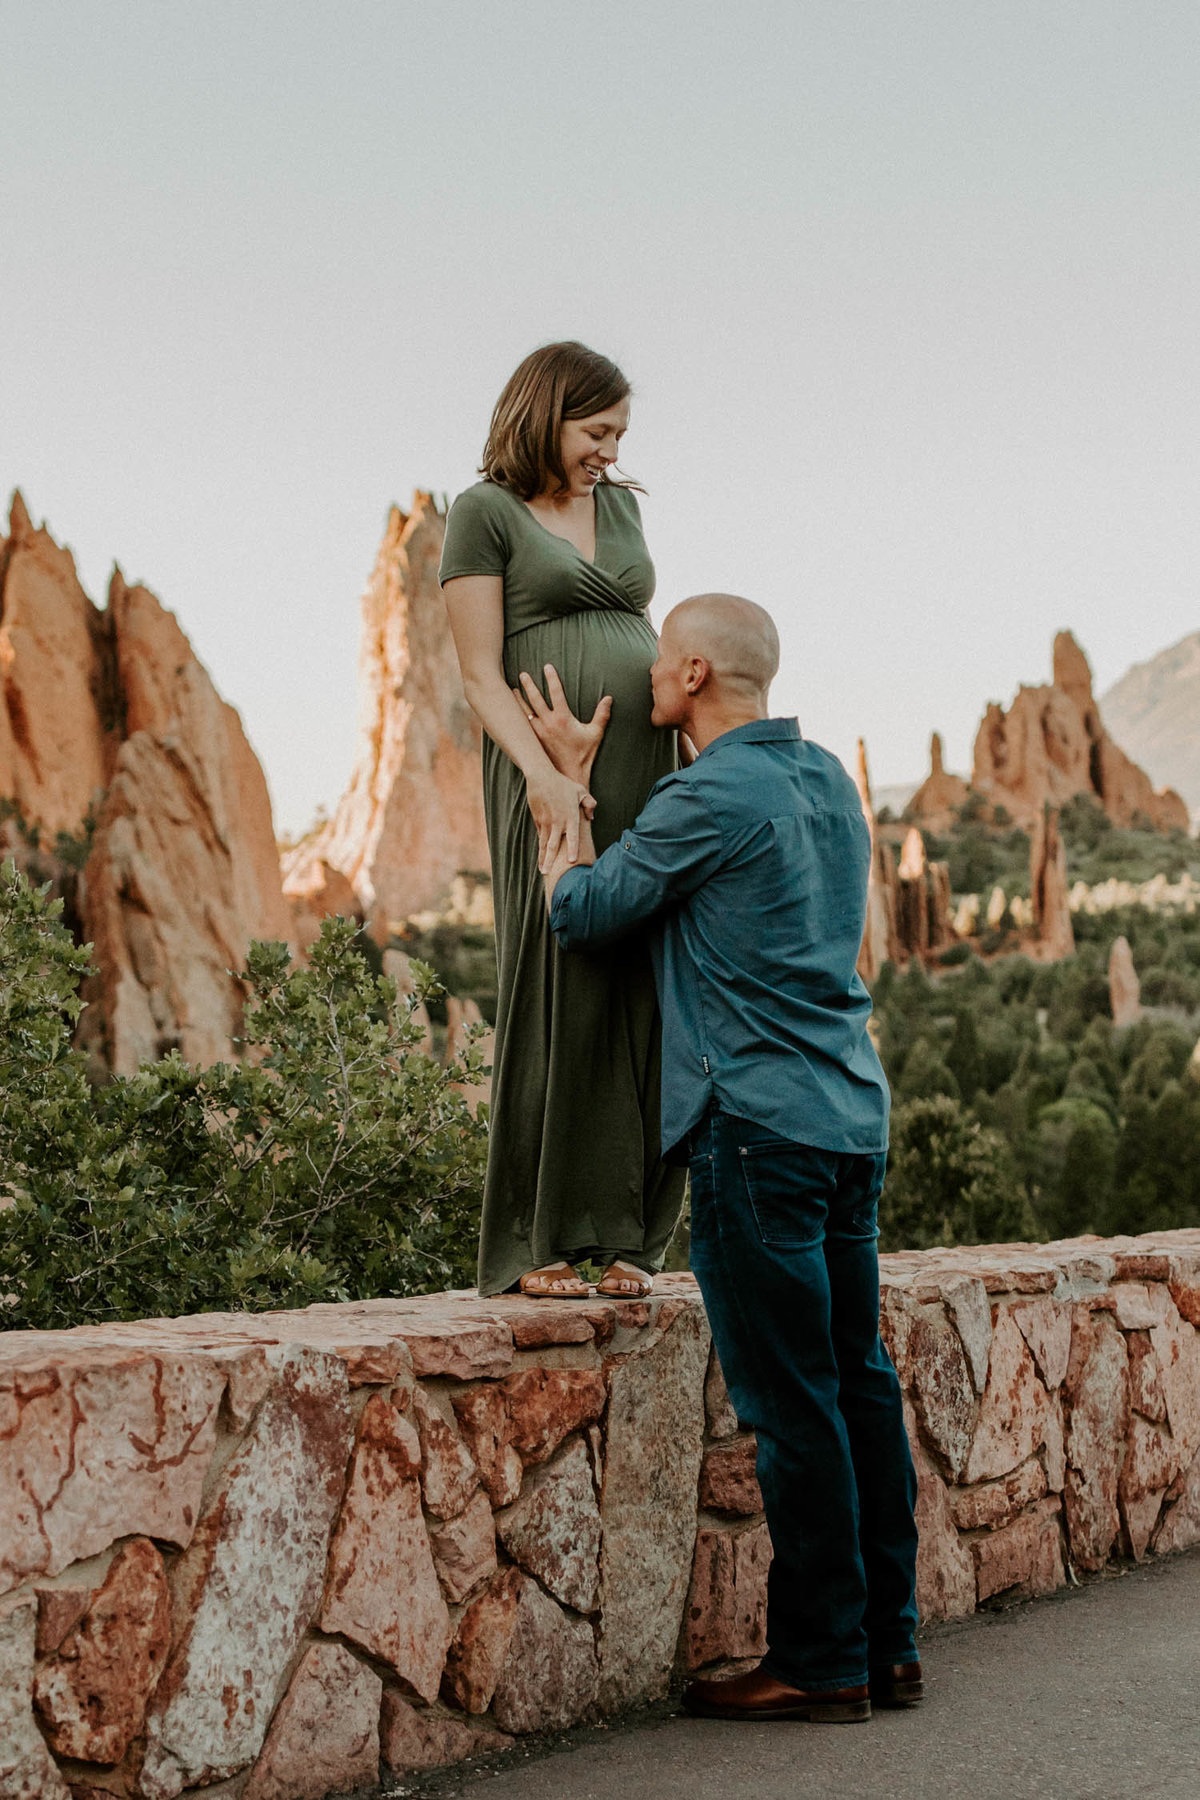 colorado-springs-garden-of-the-gods-sunrise-couples-adventure-session-colorado-elopement-photographer-9